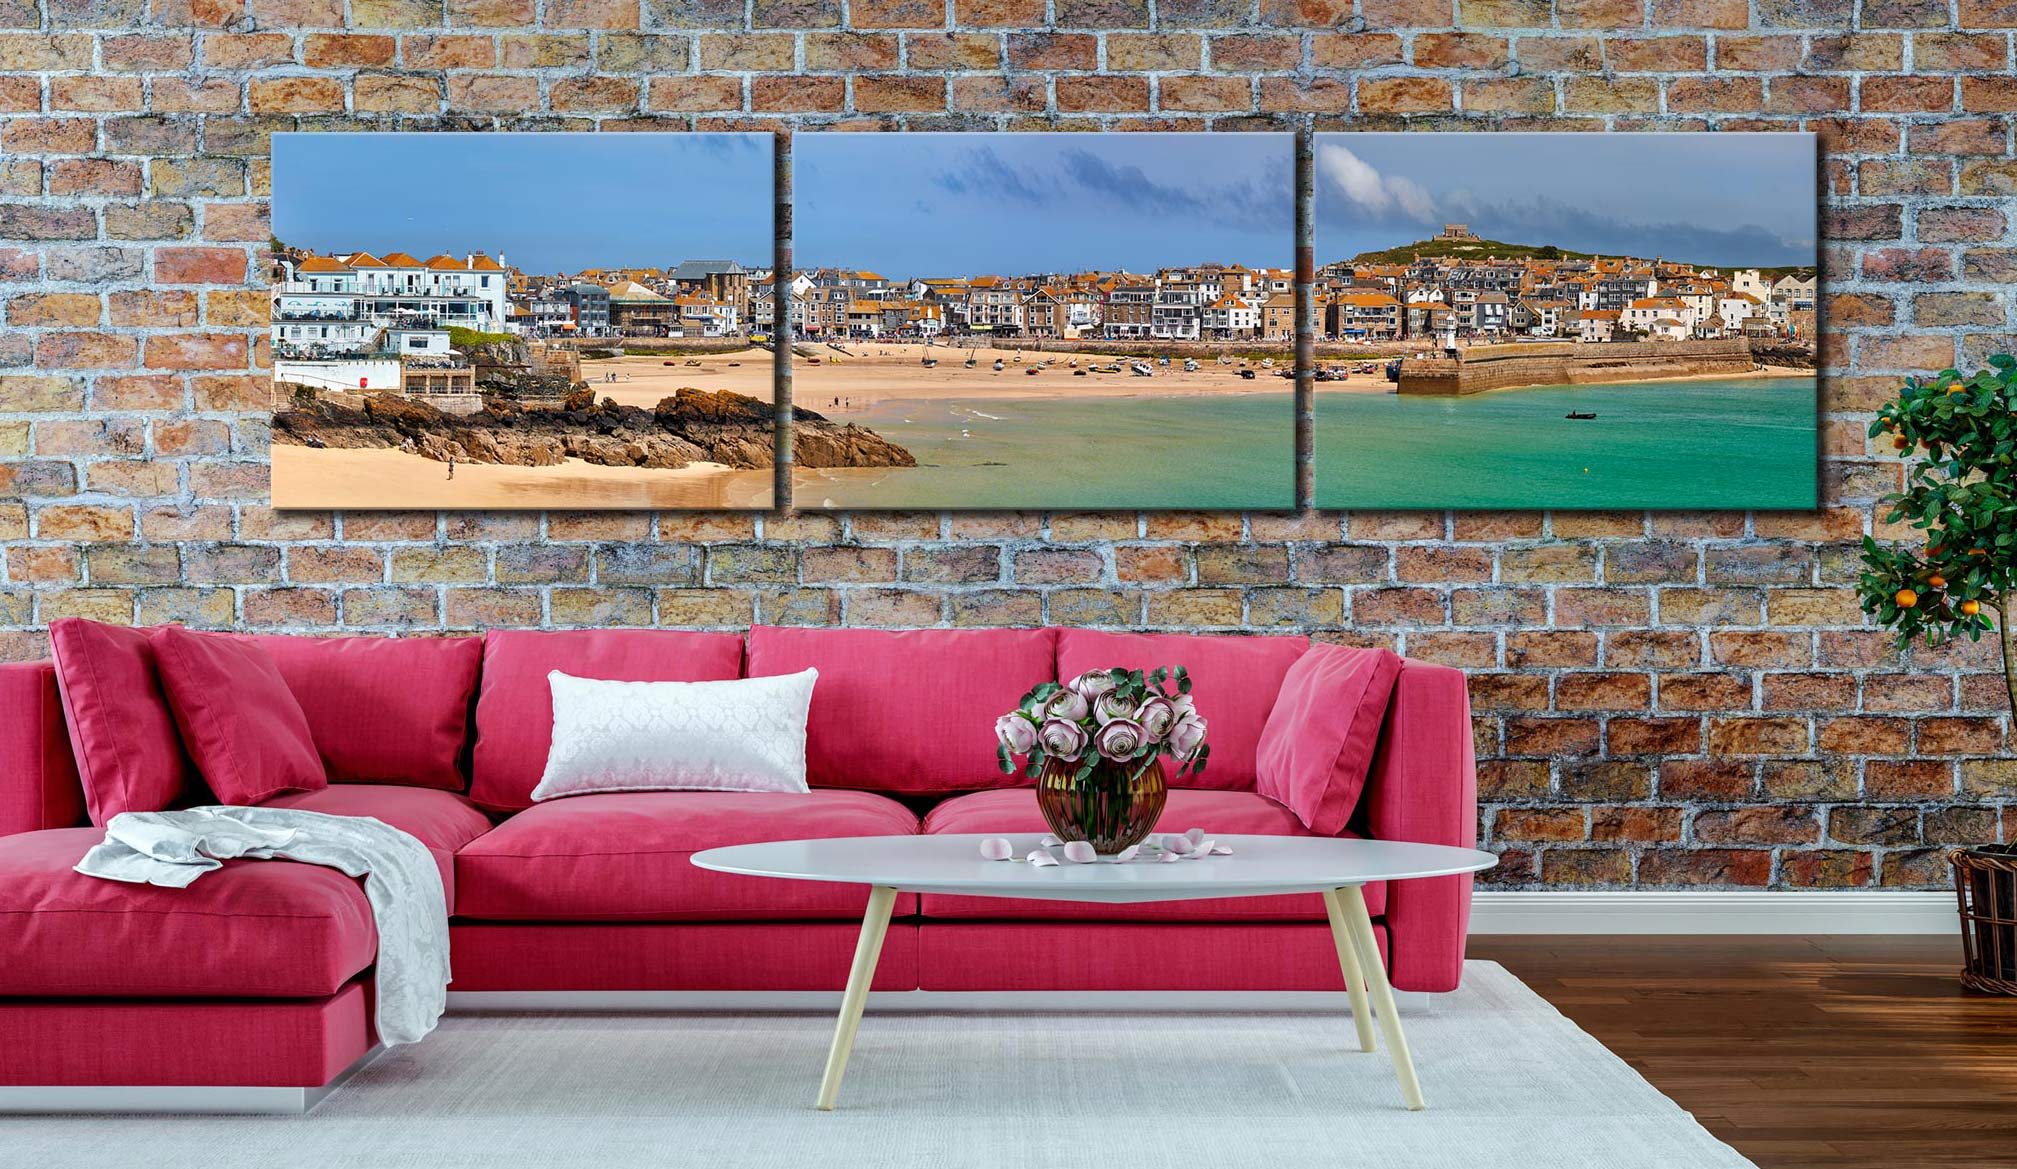 St Ives Seafront - 3 Panel Canvas on Wall